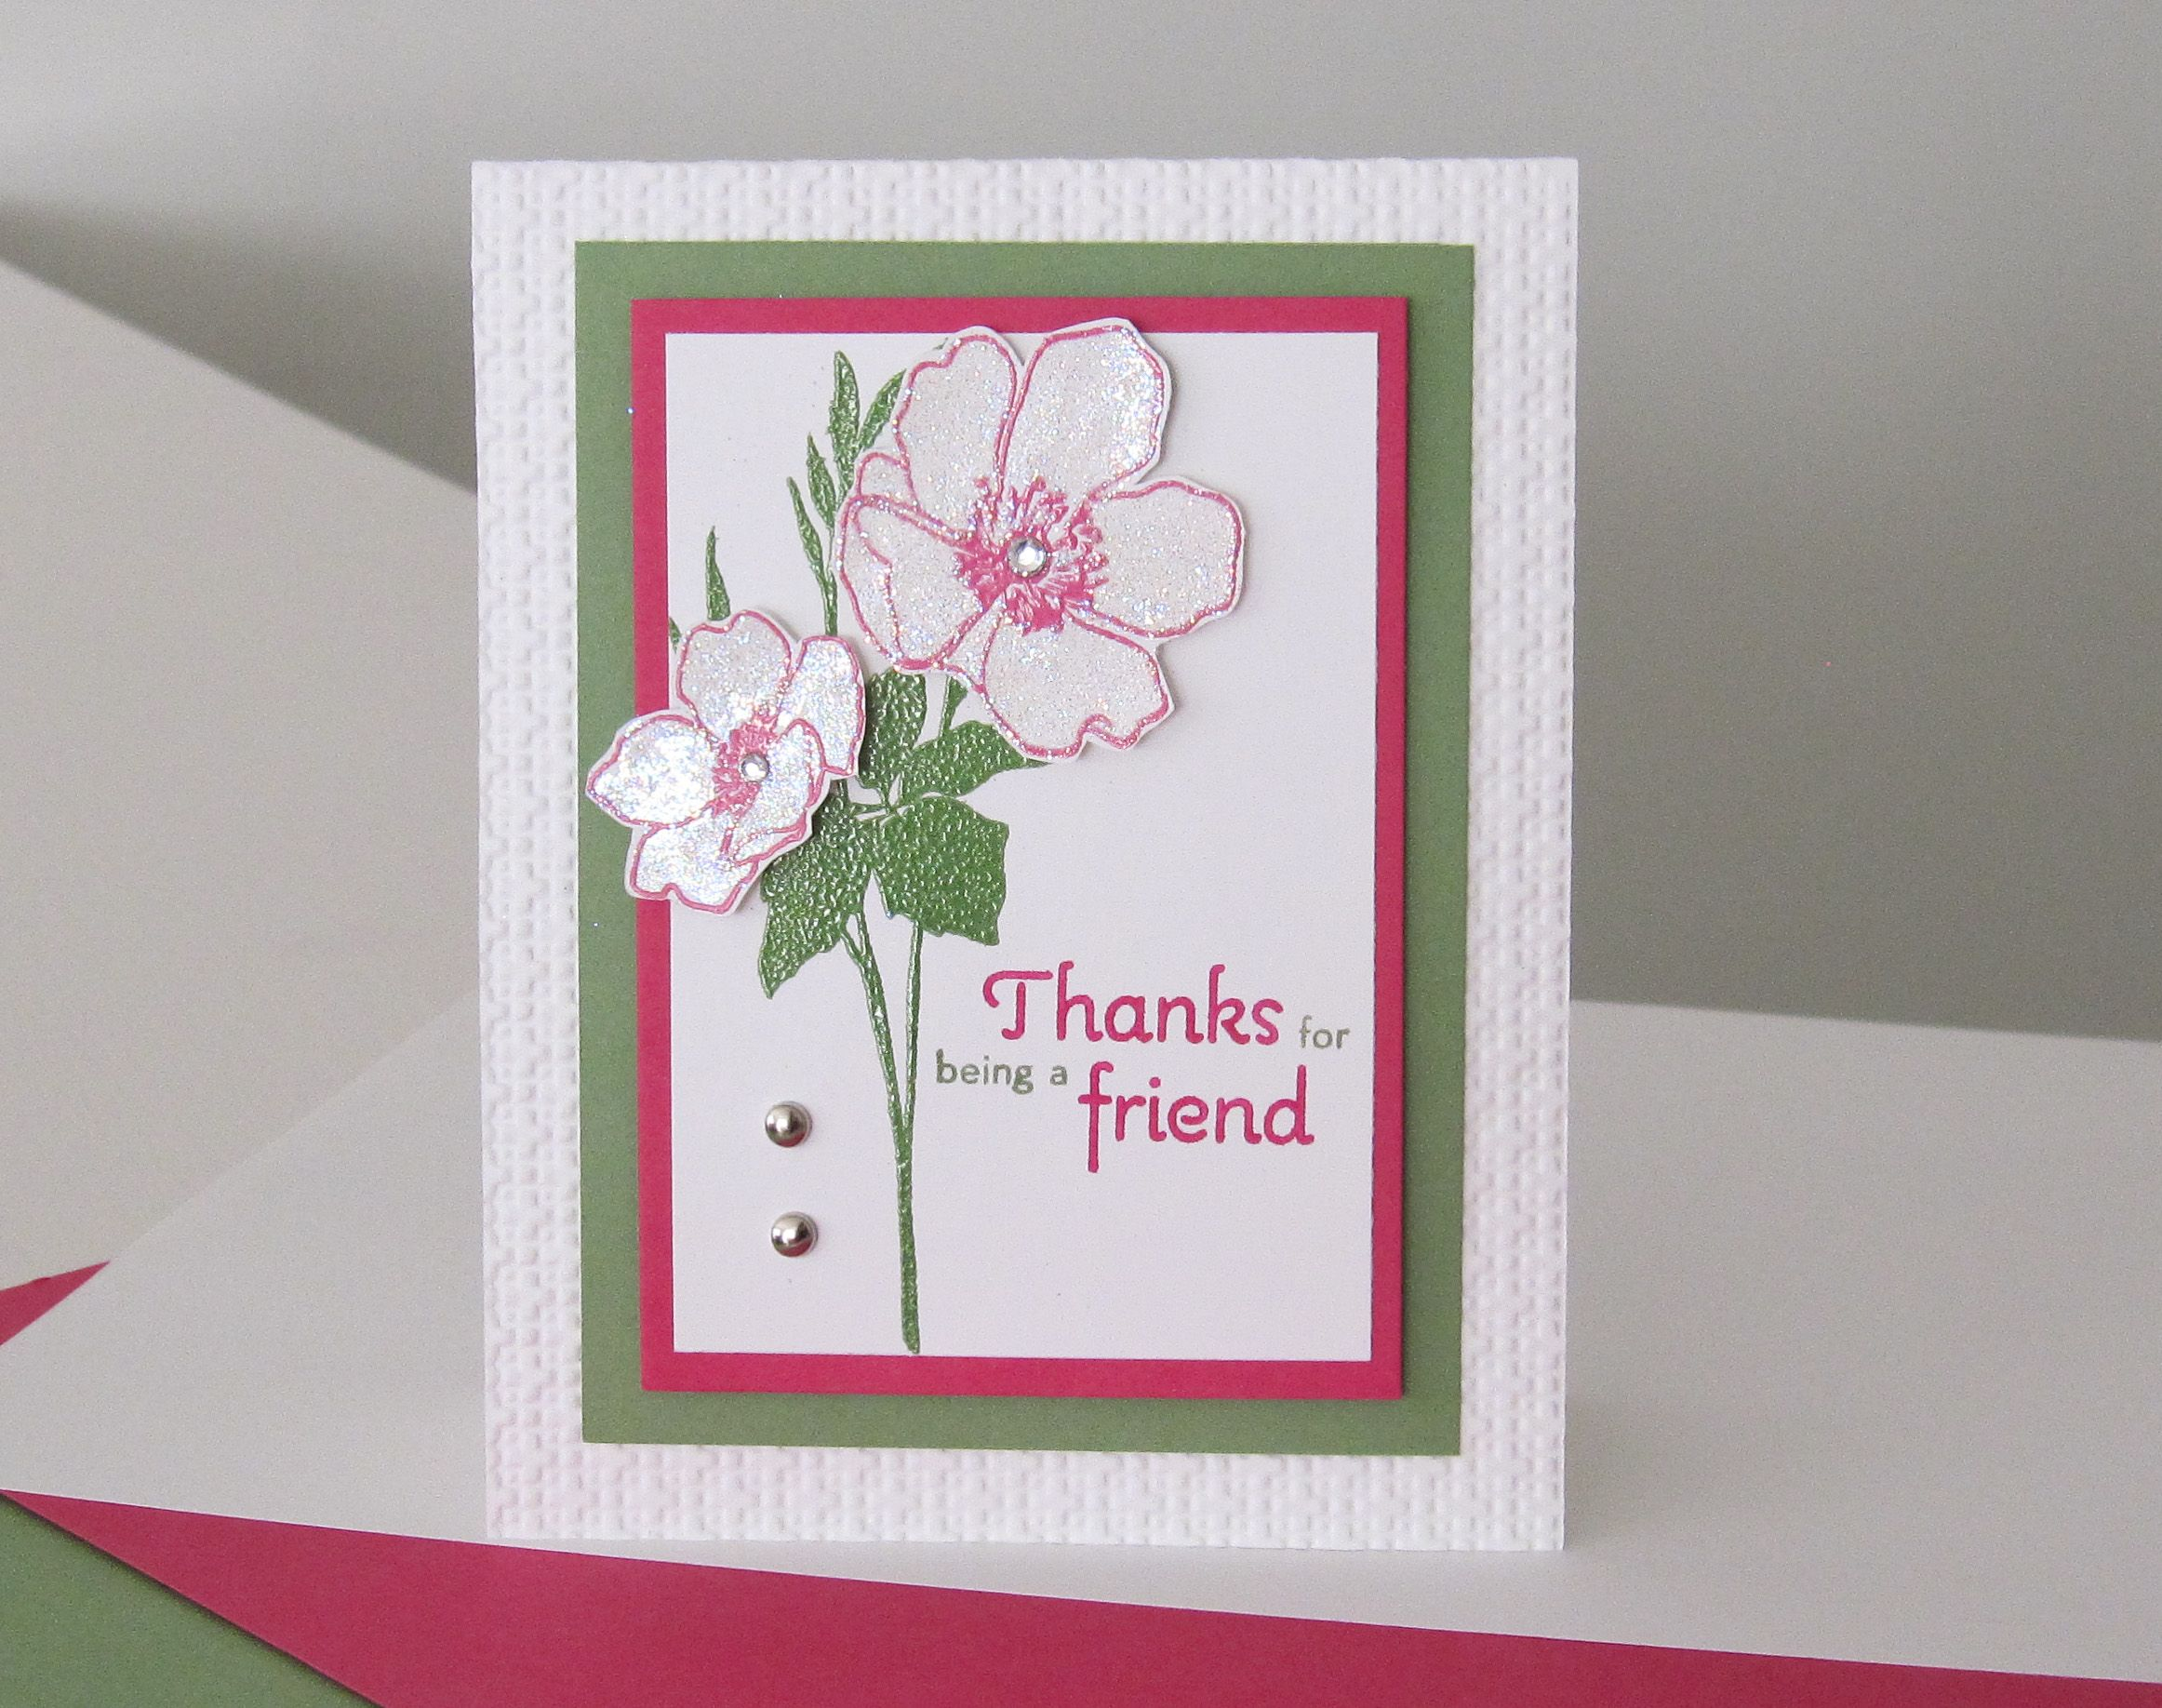 Exceptional Card Making Ideas Stampin Up Part - 7: Stampin Up Card Ideas | Stampin Up Stampin Up Fabulous Florets Photo